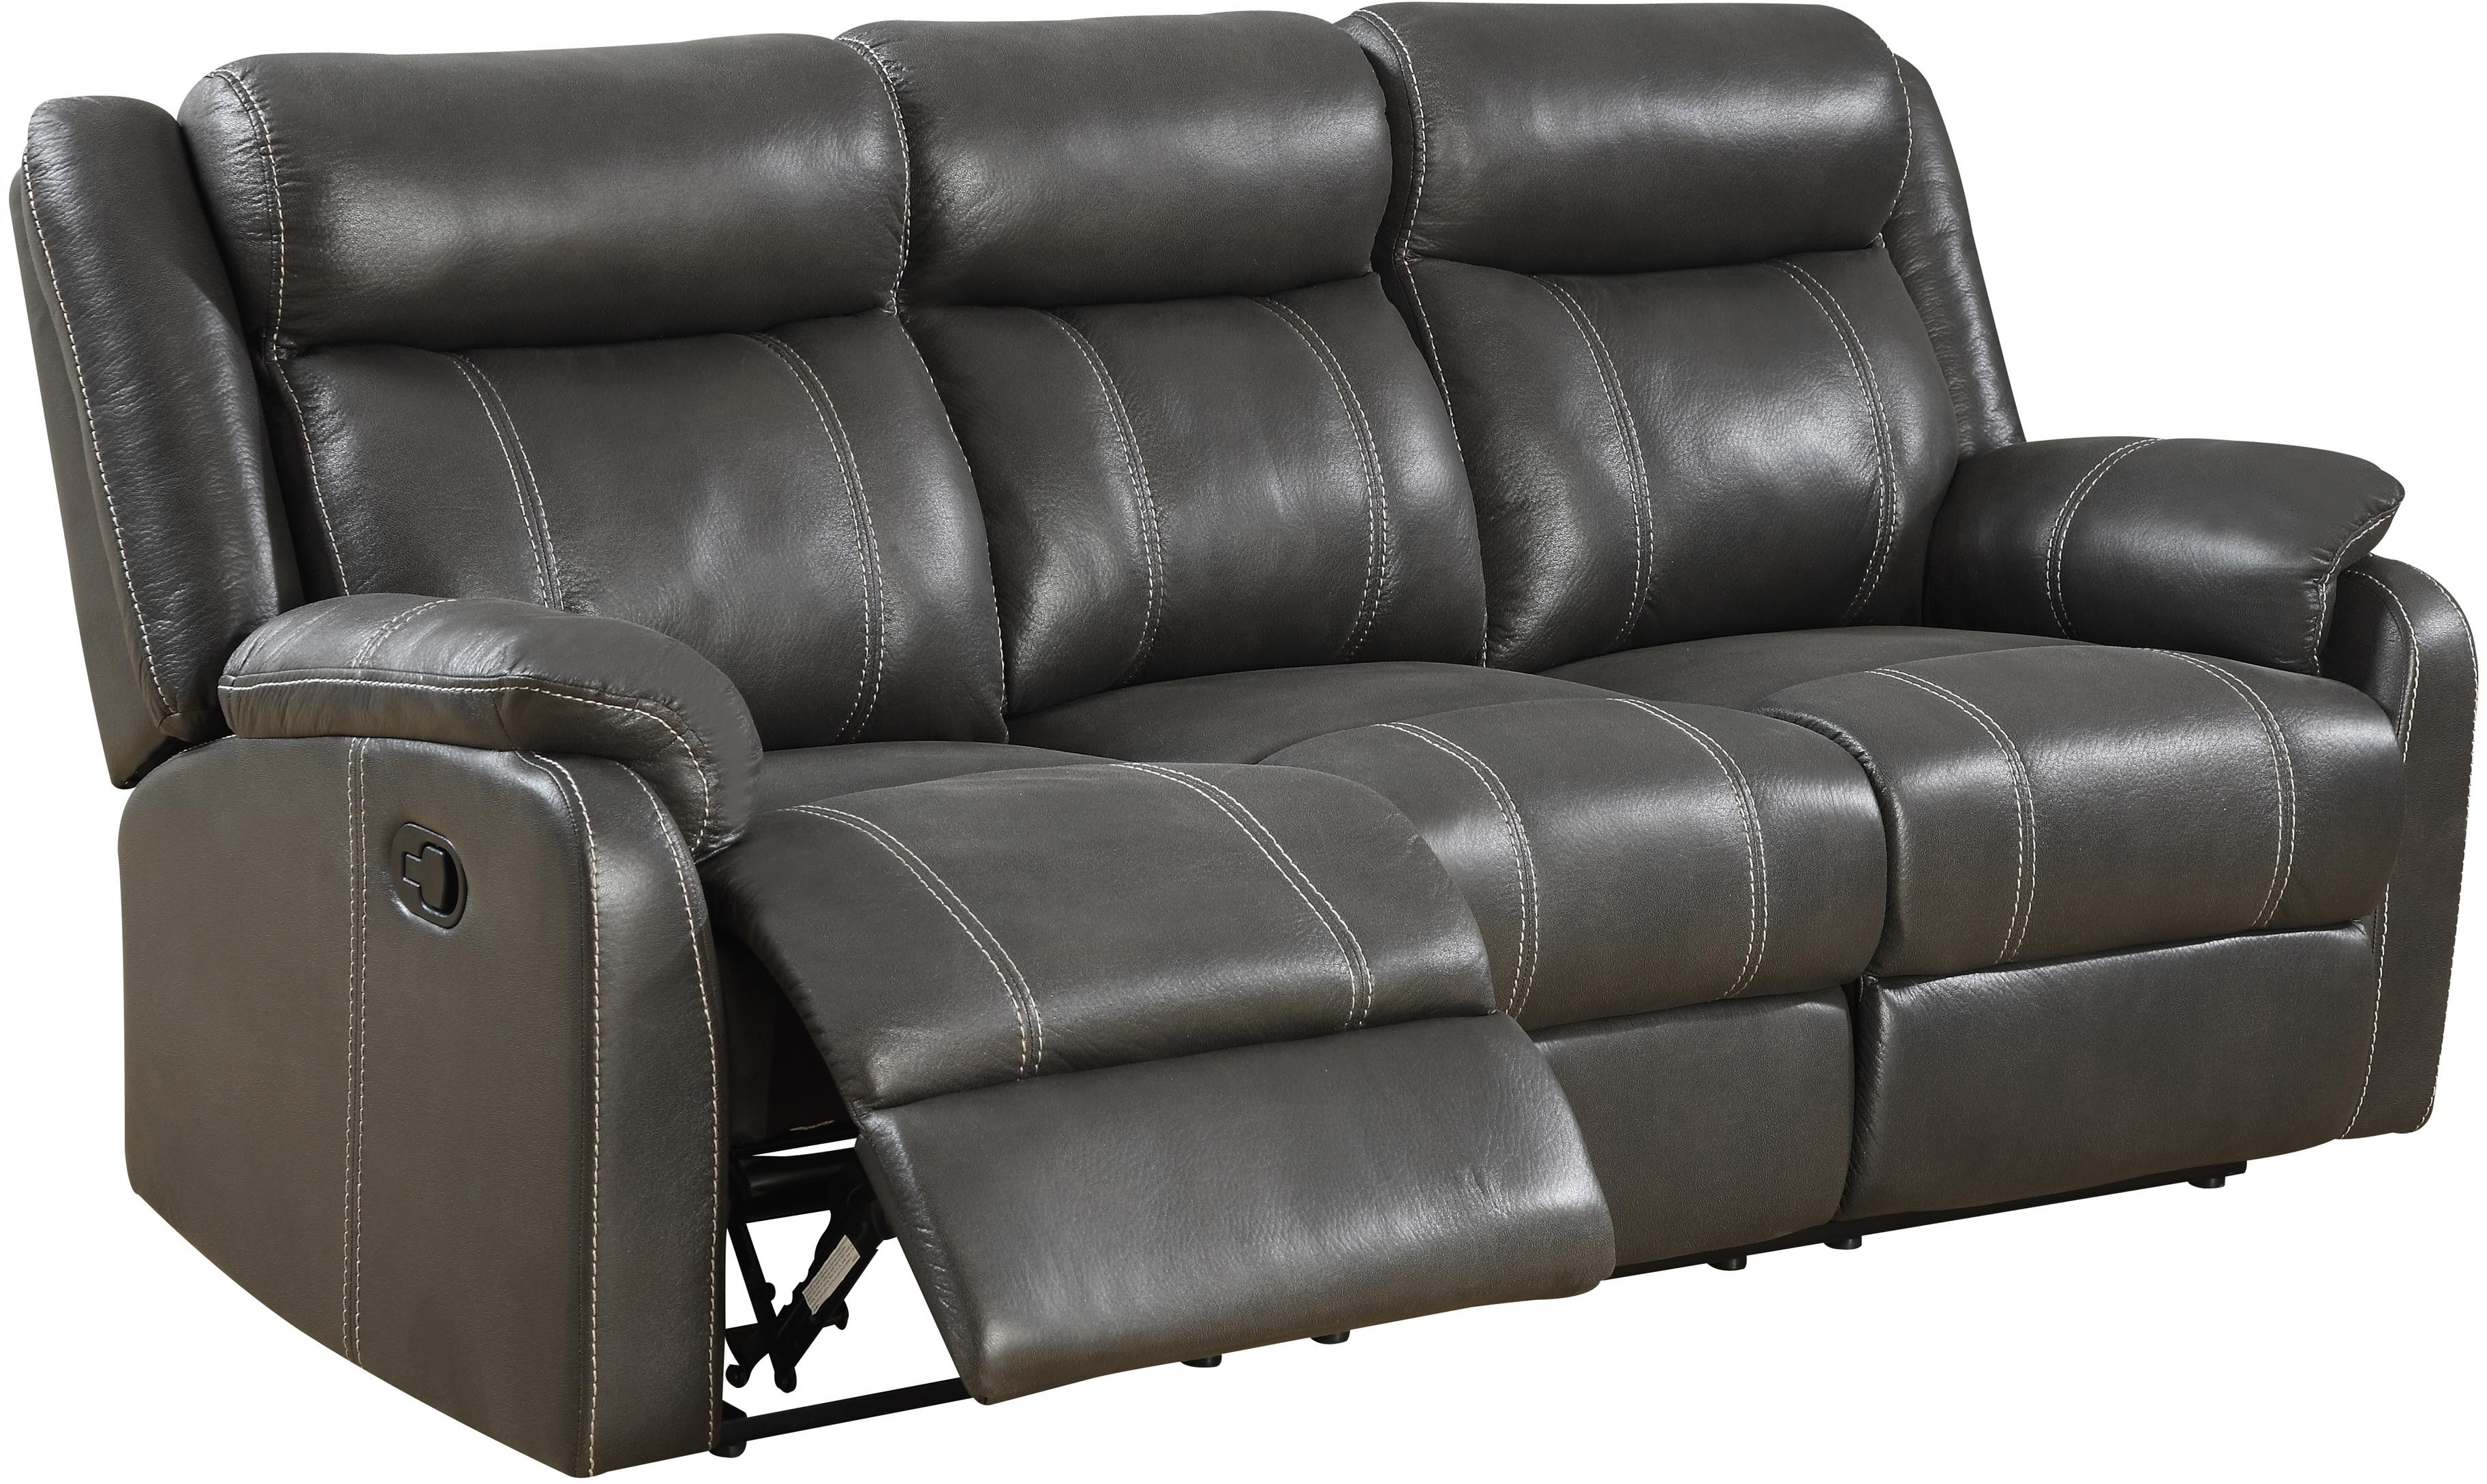 Simple Elegance Reclining Sofa With Drop Drop Down Table Domino Reclining  Sofa